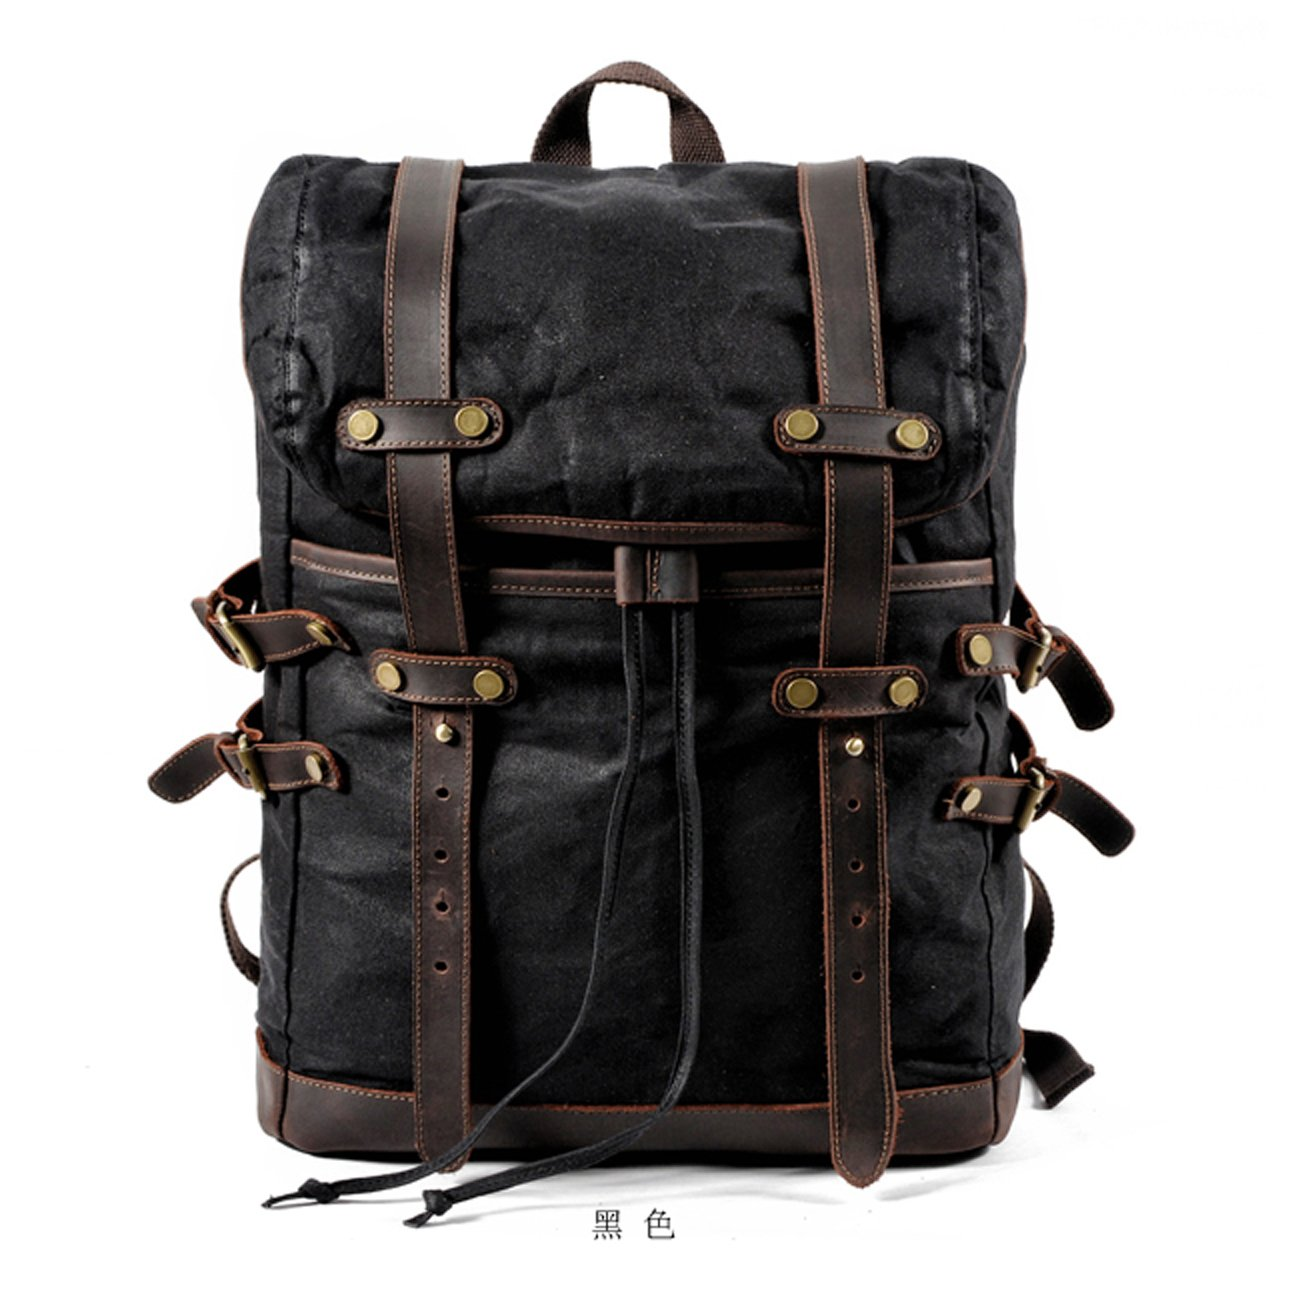 Waxed Canvas Leather Mens 15'' Computer Backpack Black Hiking Backpack Travel Backpack for Men